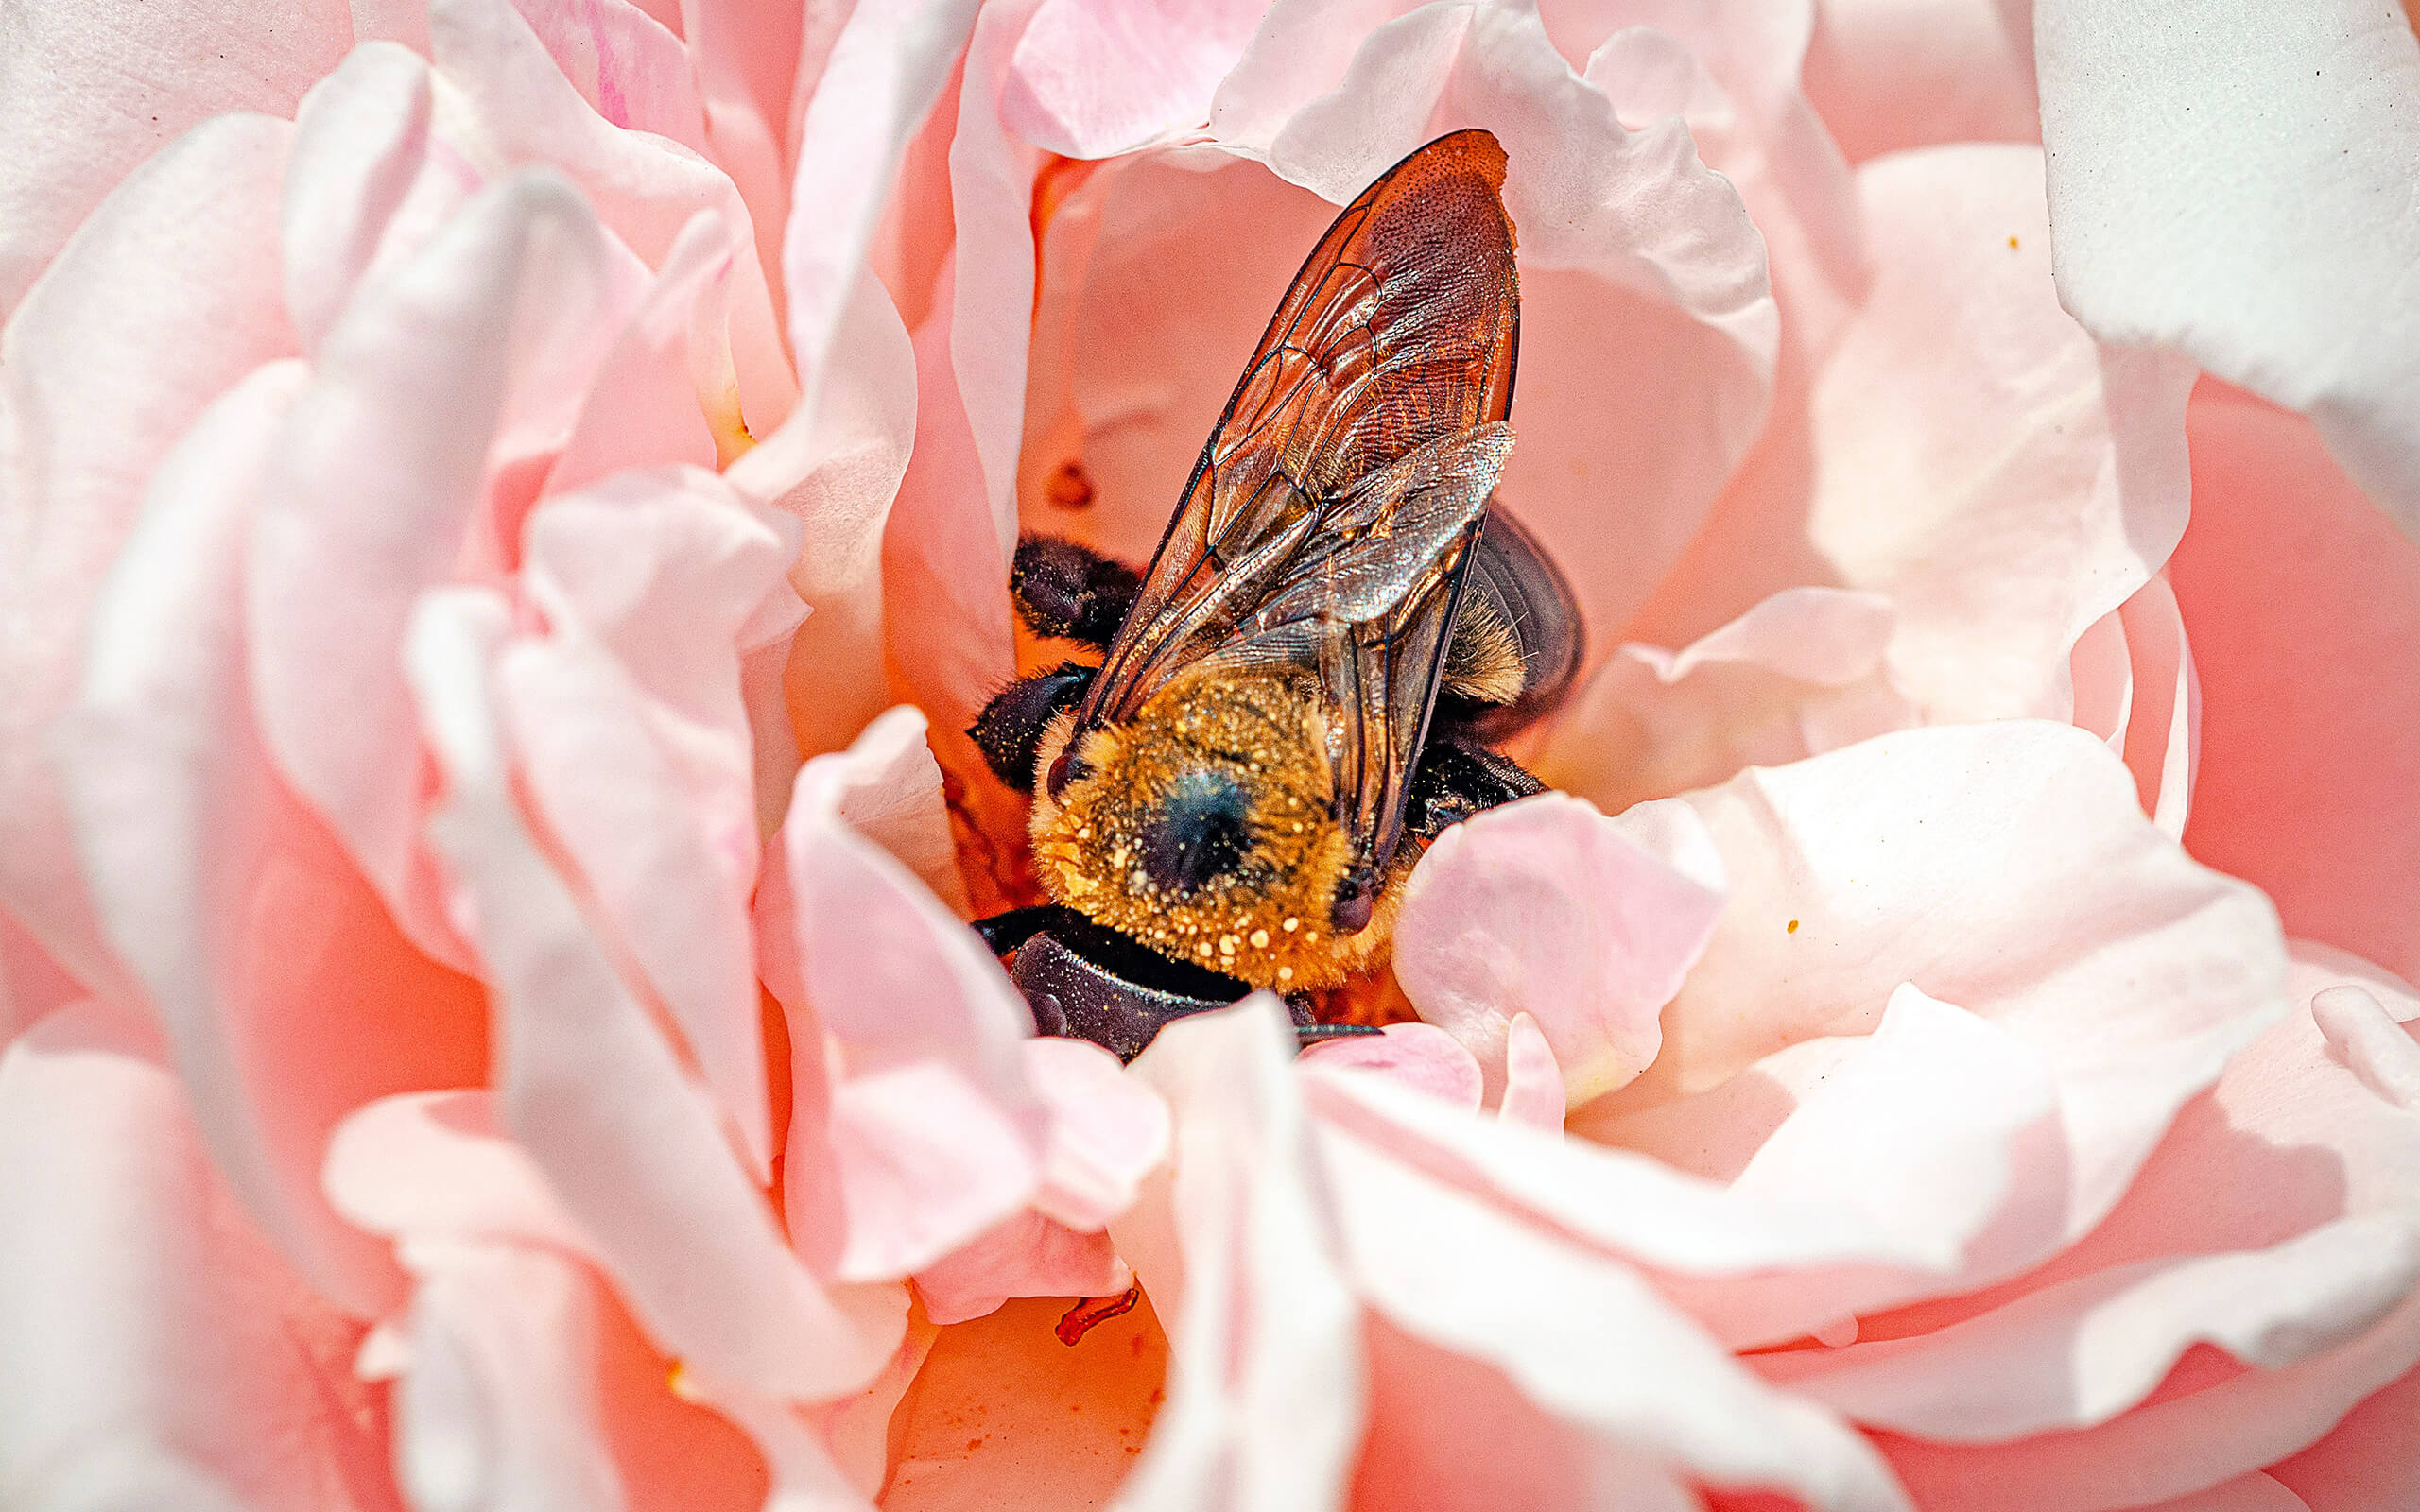 Homey bee sitting on a pink rose